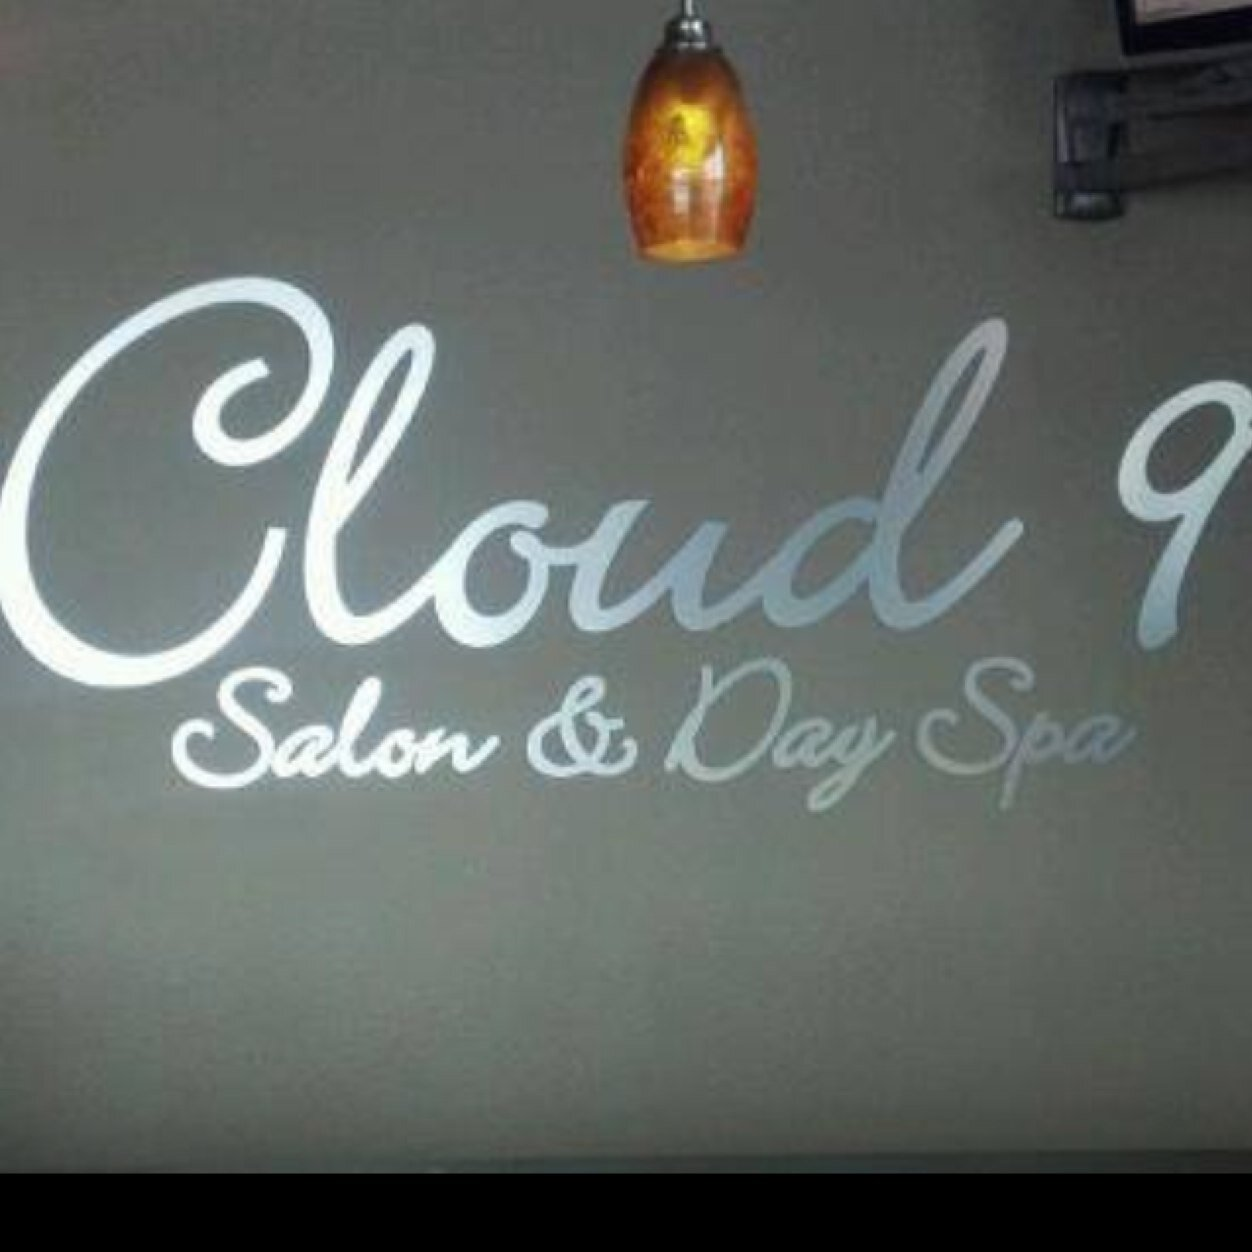 Cloud 9 salon cloud9salonspa twitter for Cloud 9 salon dehradun